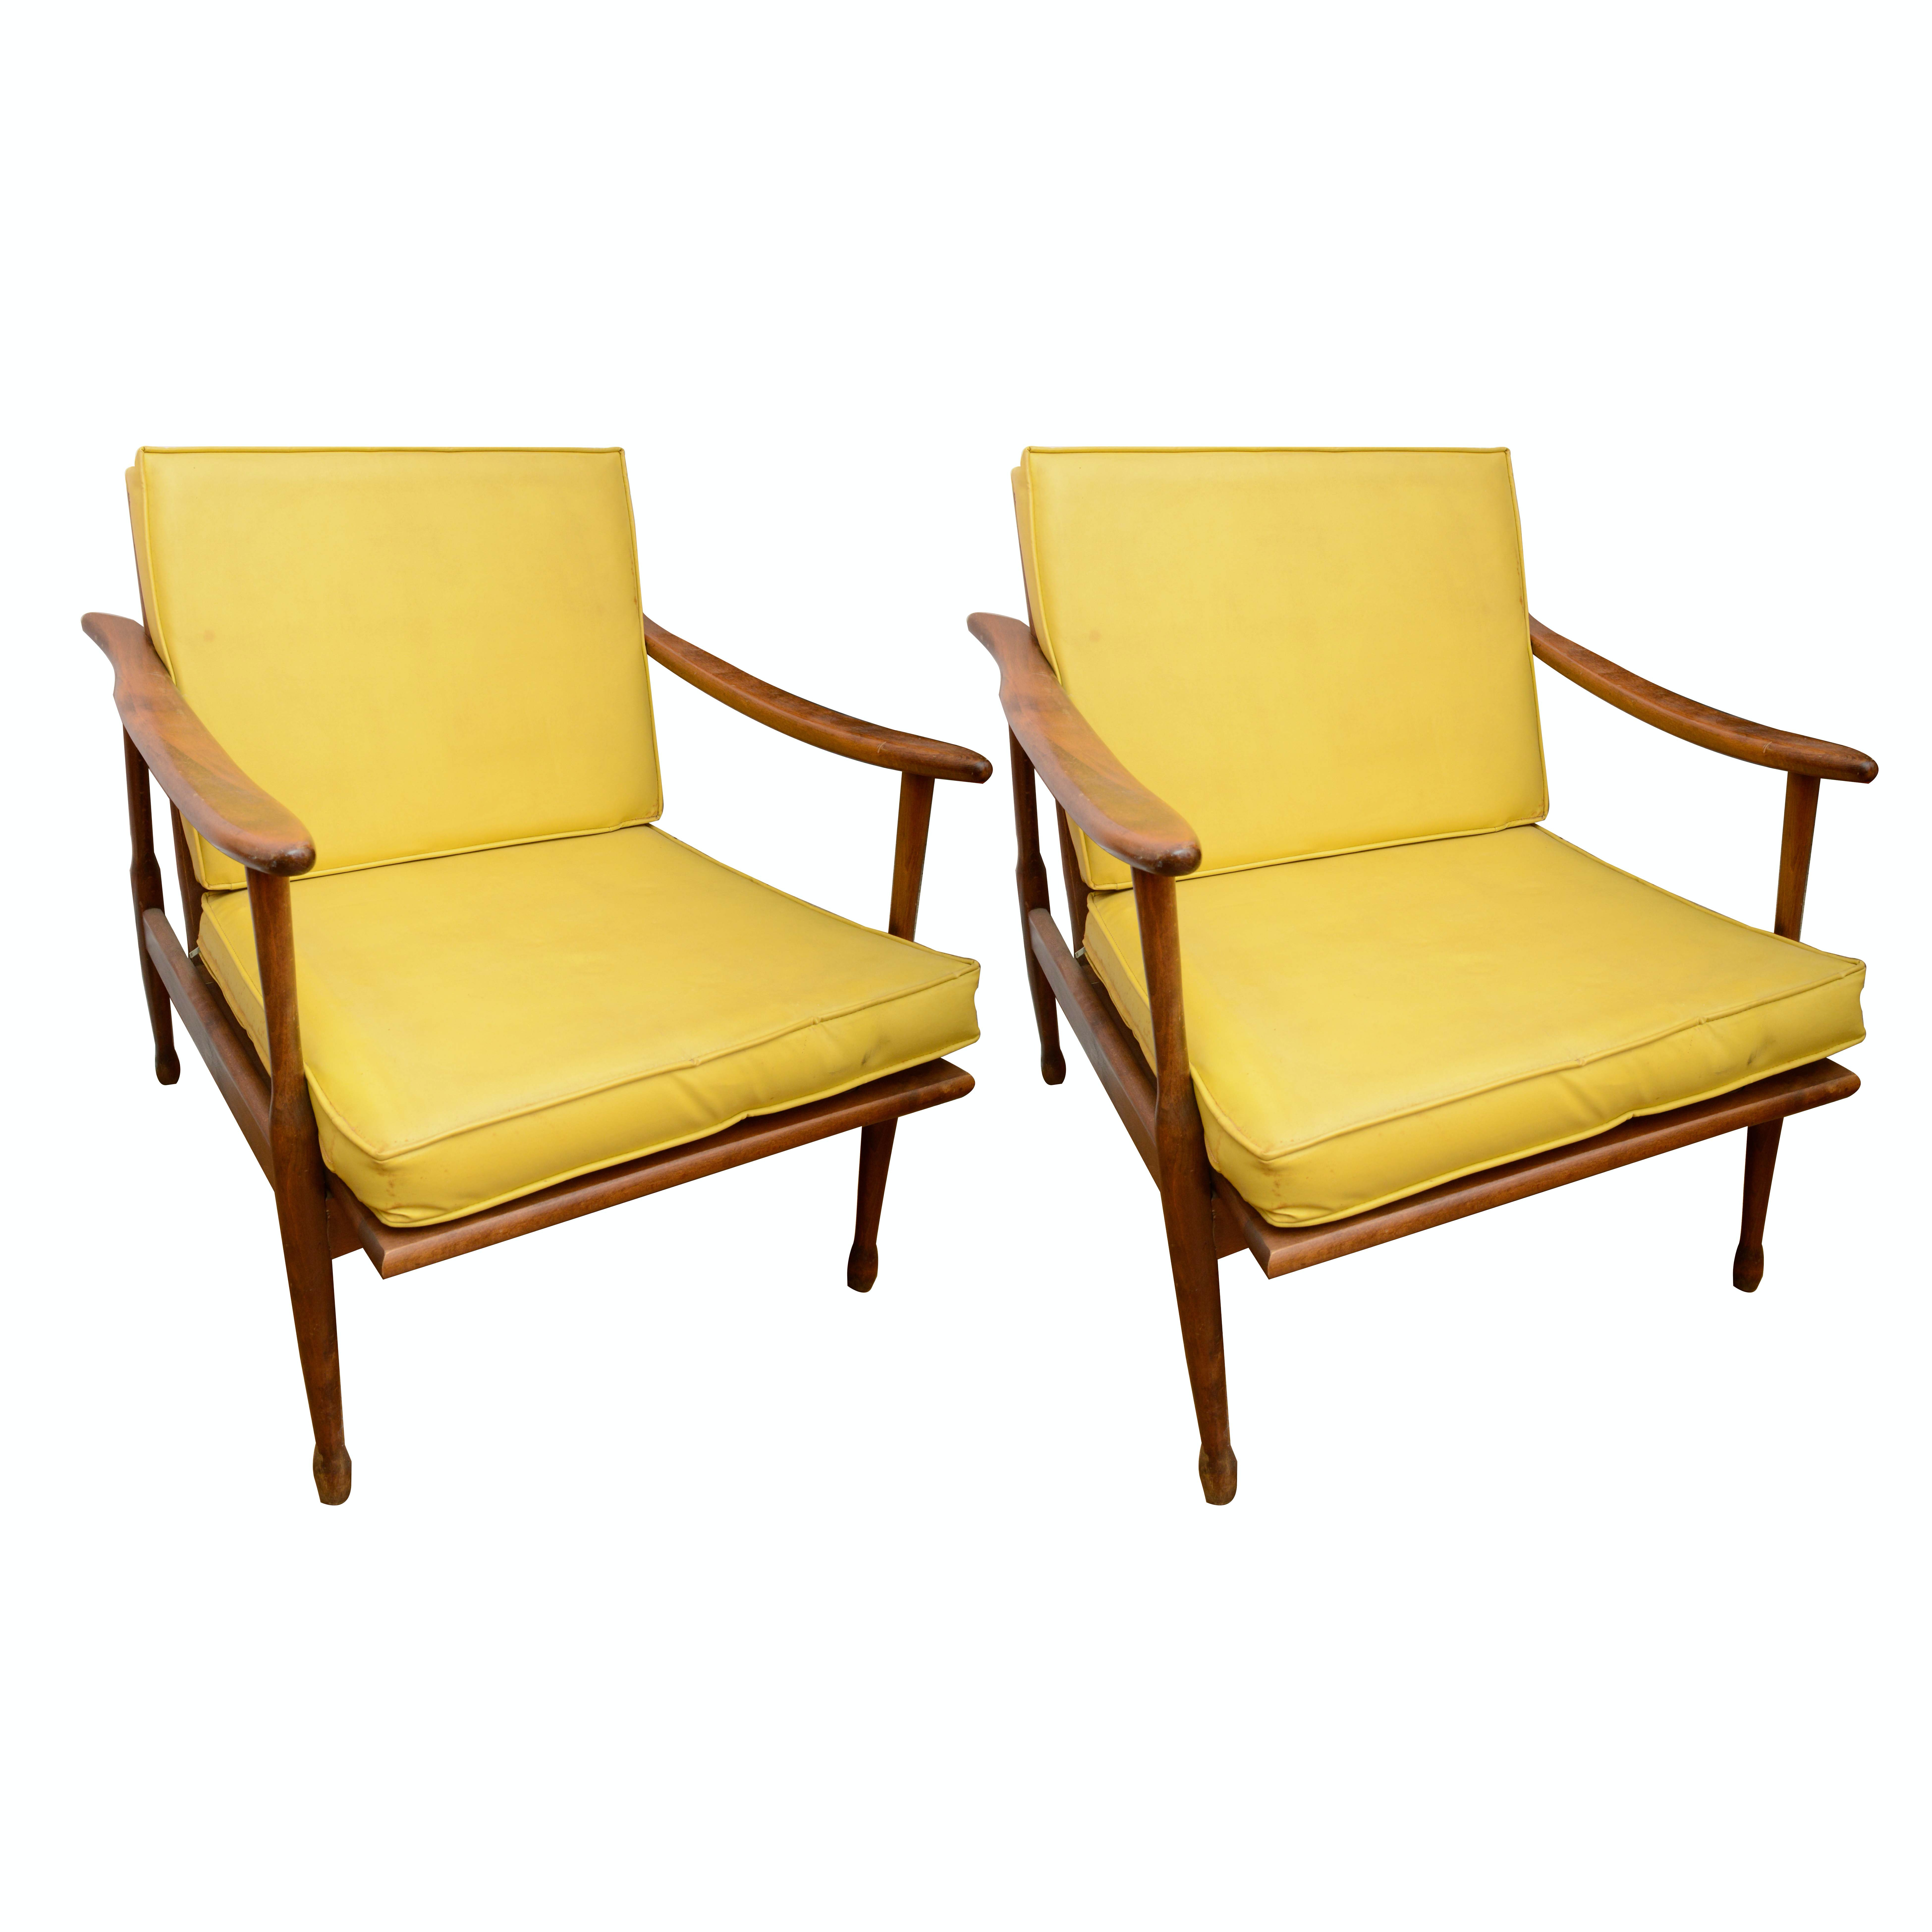 Danish Modern-Style Arm Chairs with Cushions